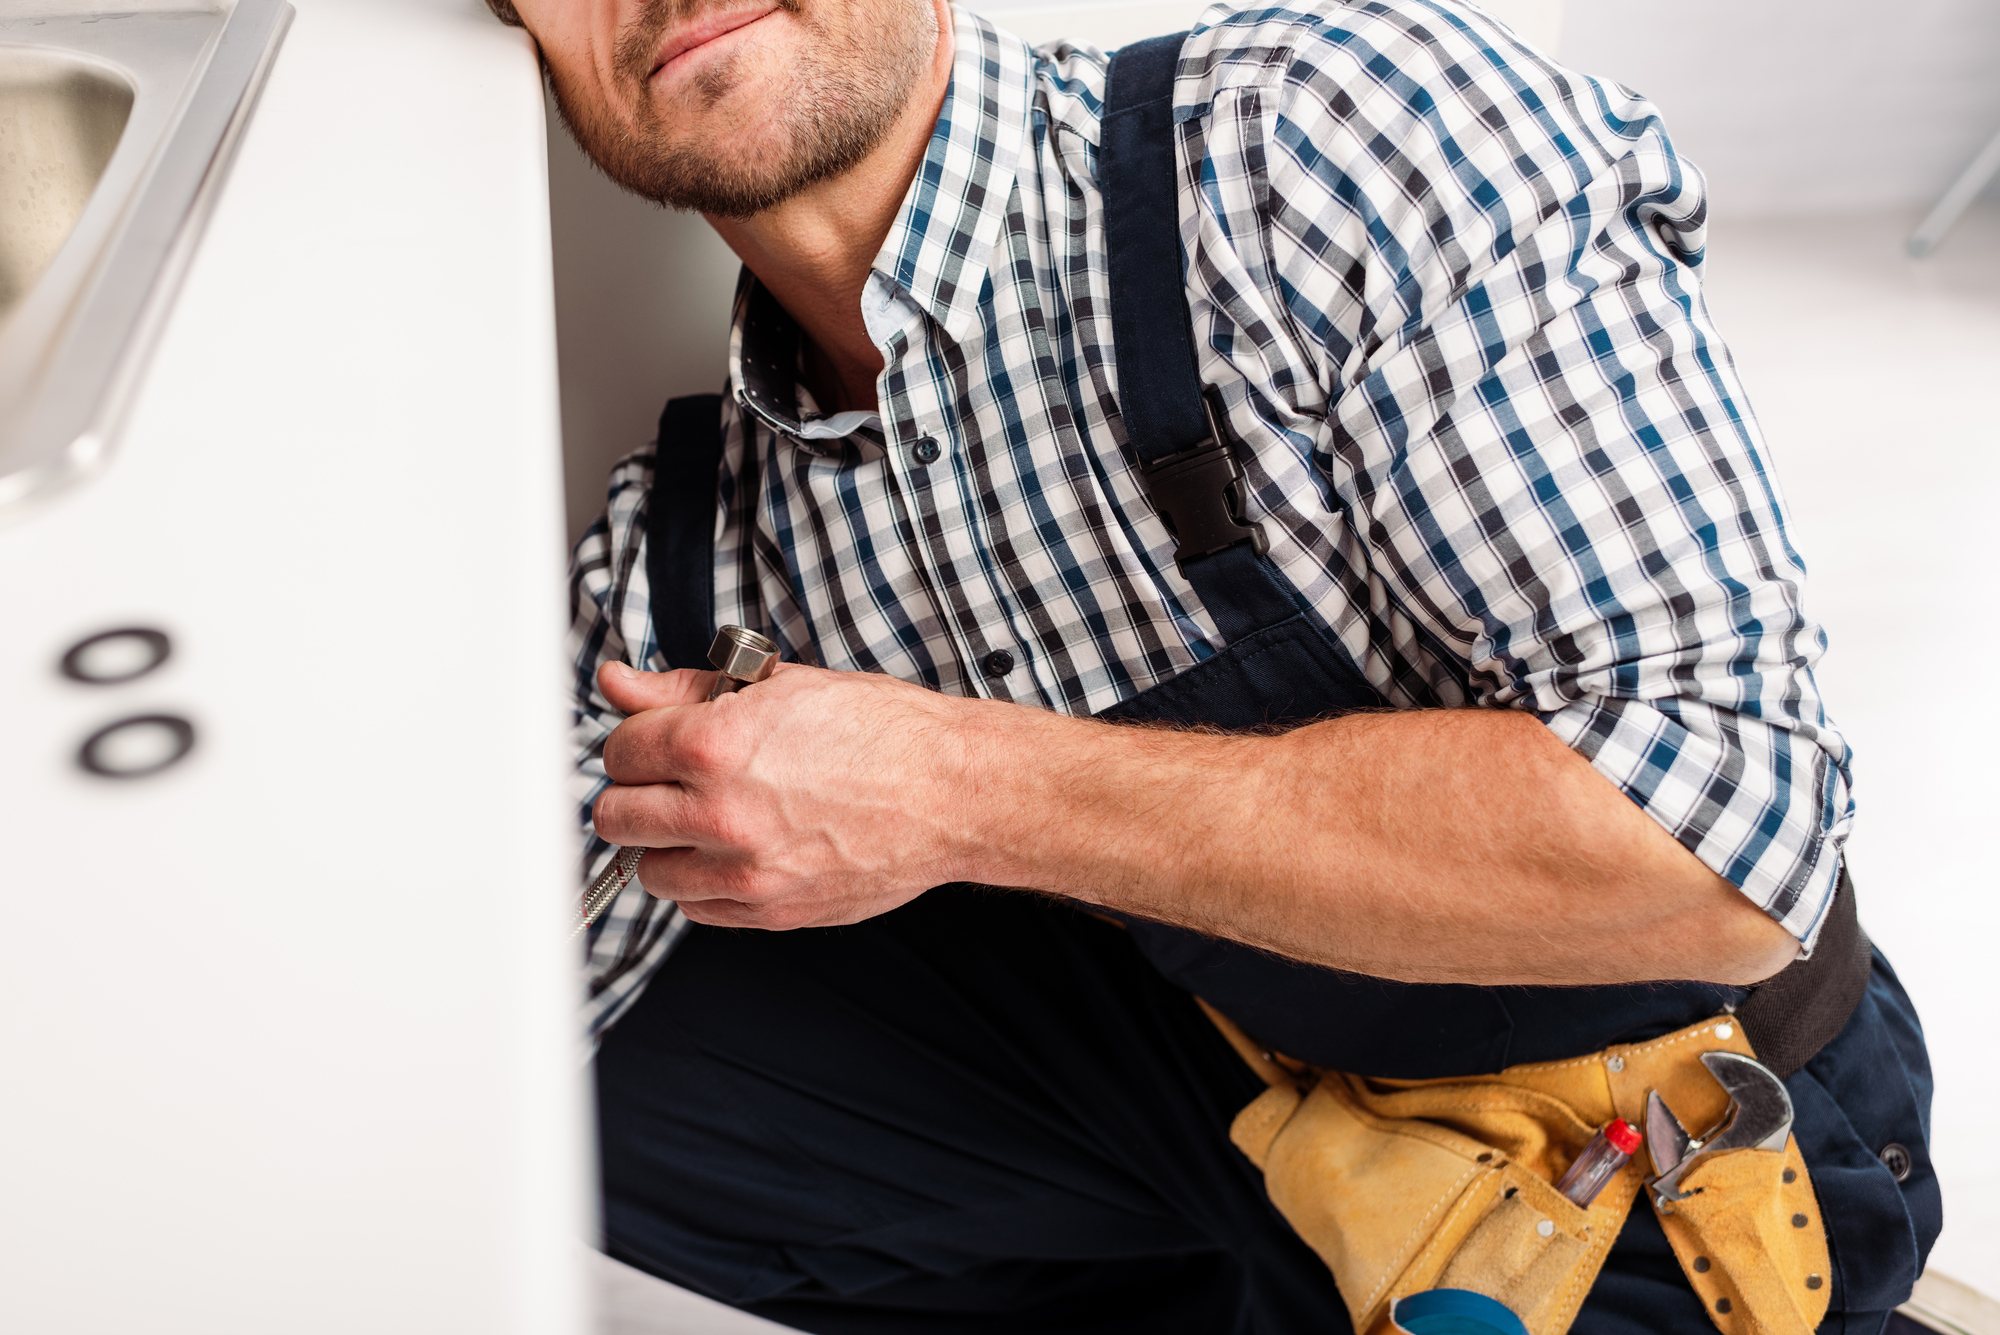 Cropped view of plumber holding metal pipe while repairing sink in kitchen